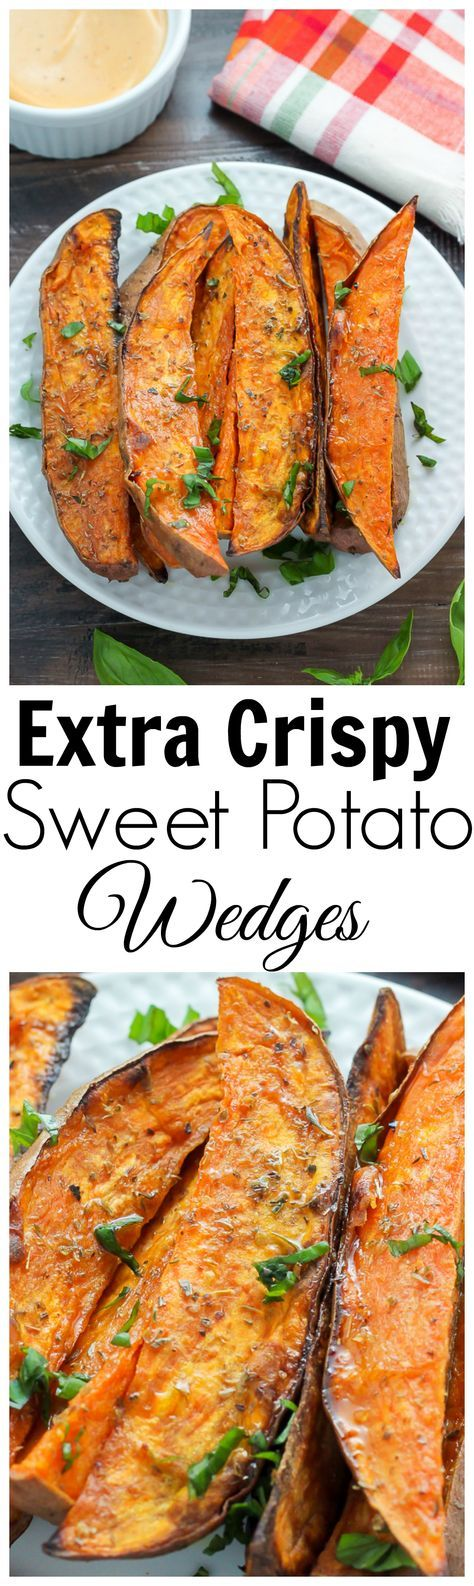 Extra Crispy Sweet Potato Wedges - oven baked and made with simple ingredients. These are SO addicting!